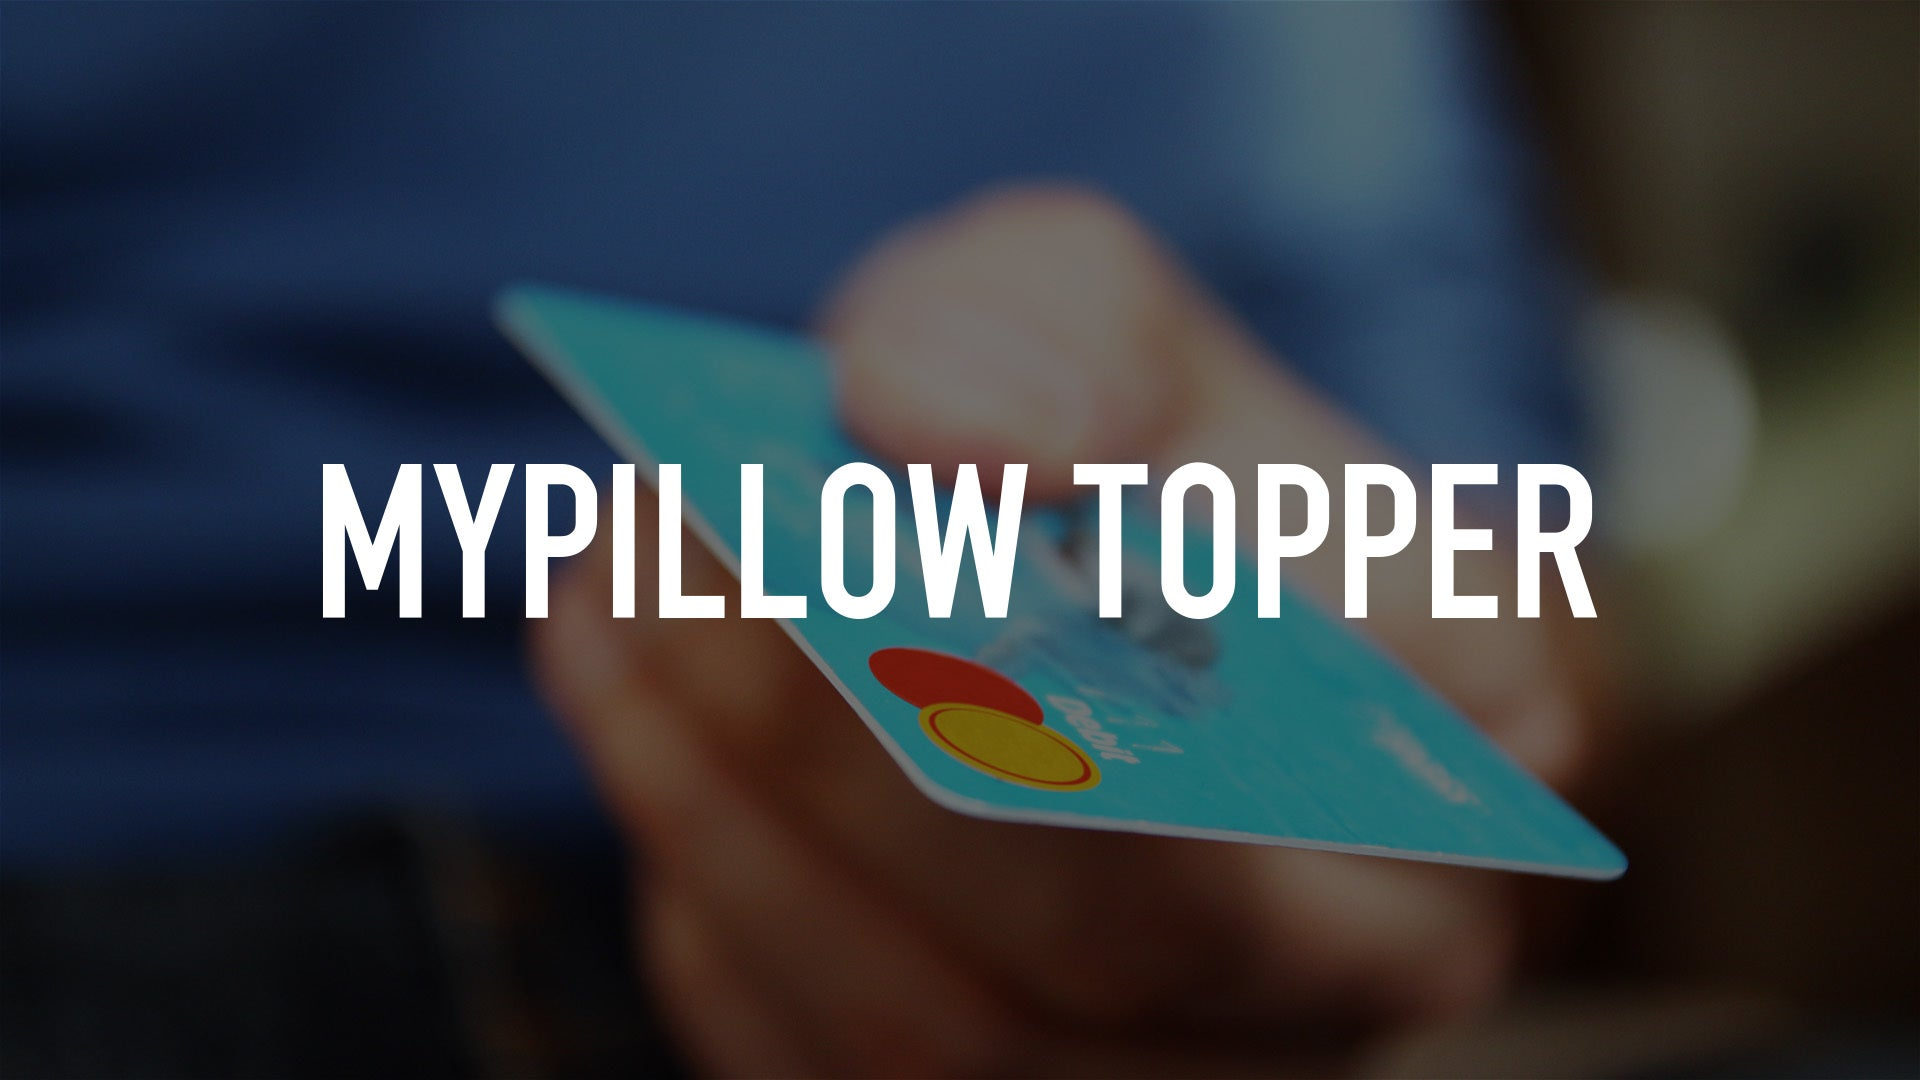 MyPillow Topper